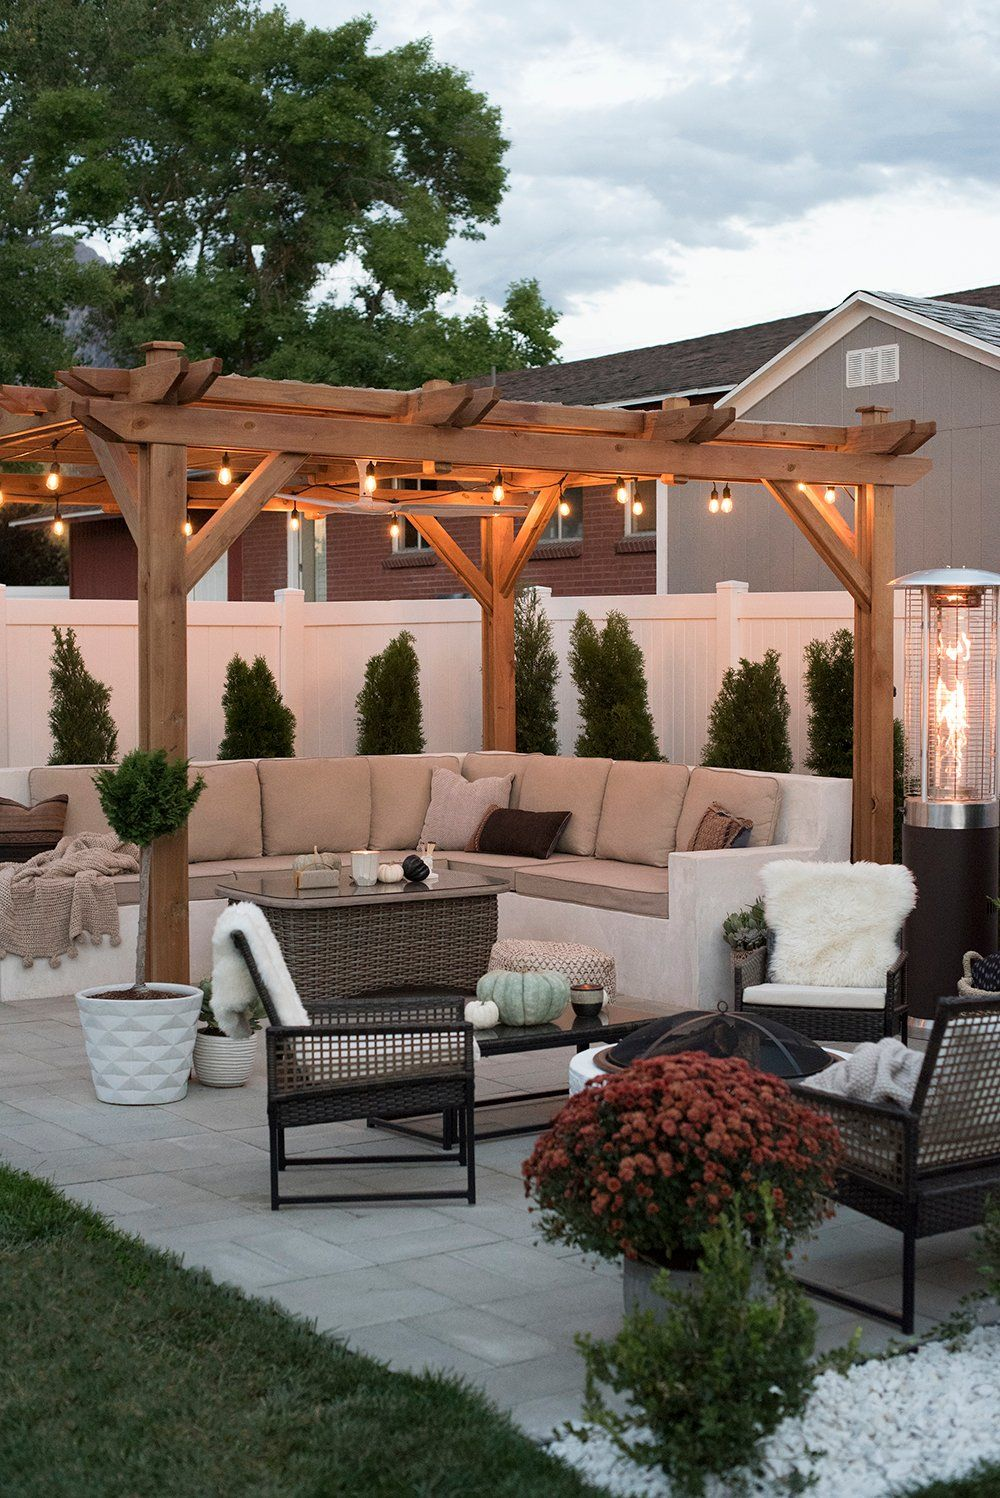 Transitioning the Backyard for Fall - Room for Tuesday Blog #falldecorideasfortheporchoutdoorspaces